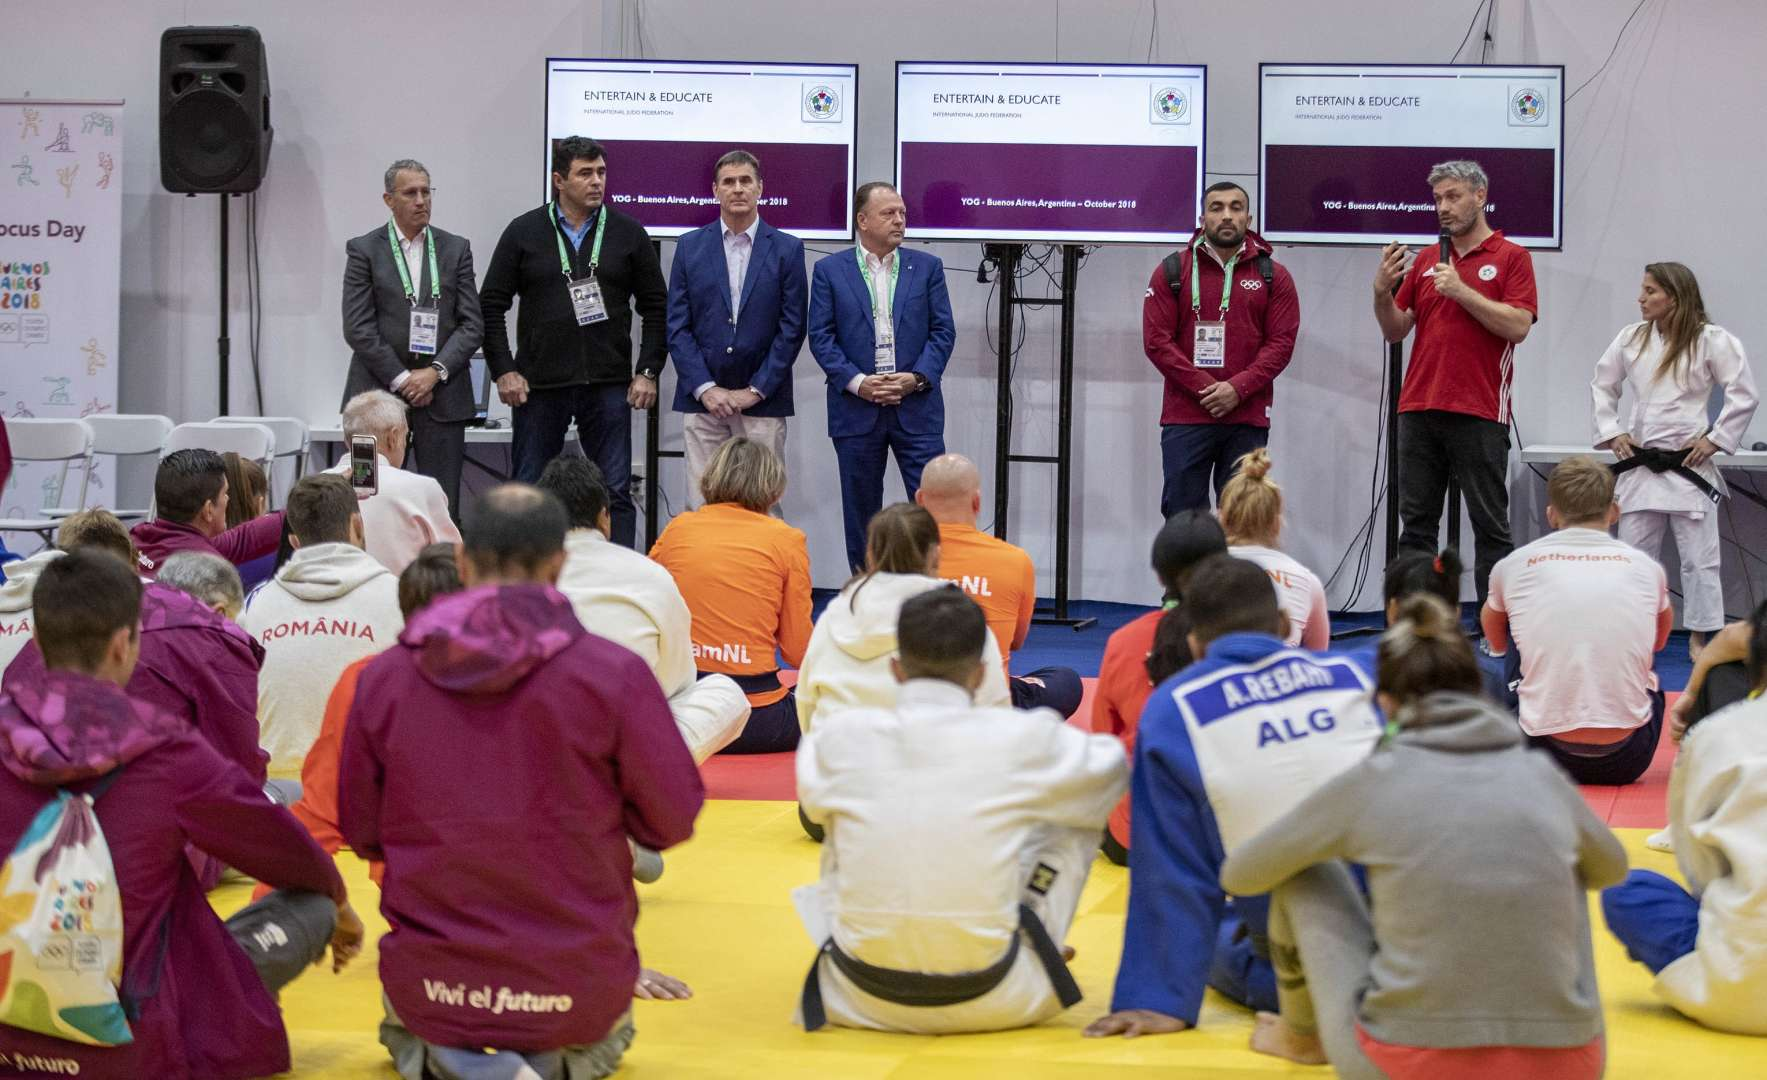 YOG 2018: Entertainment and Education and Official Draw